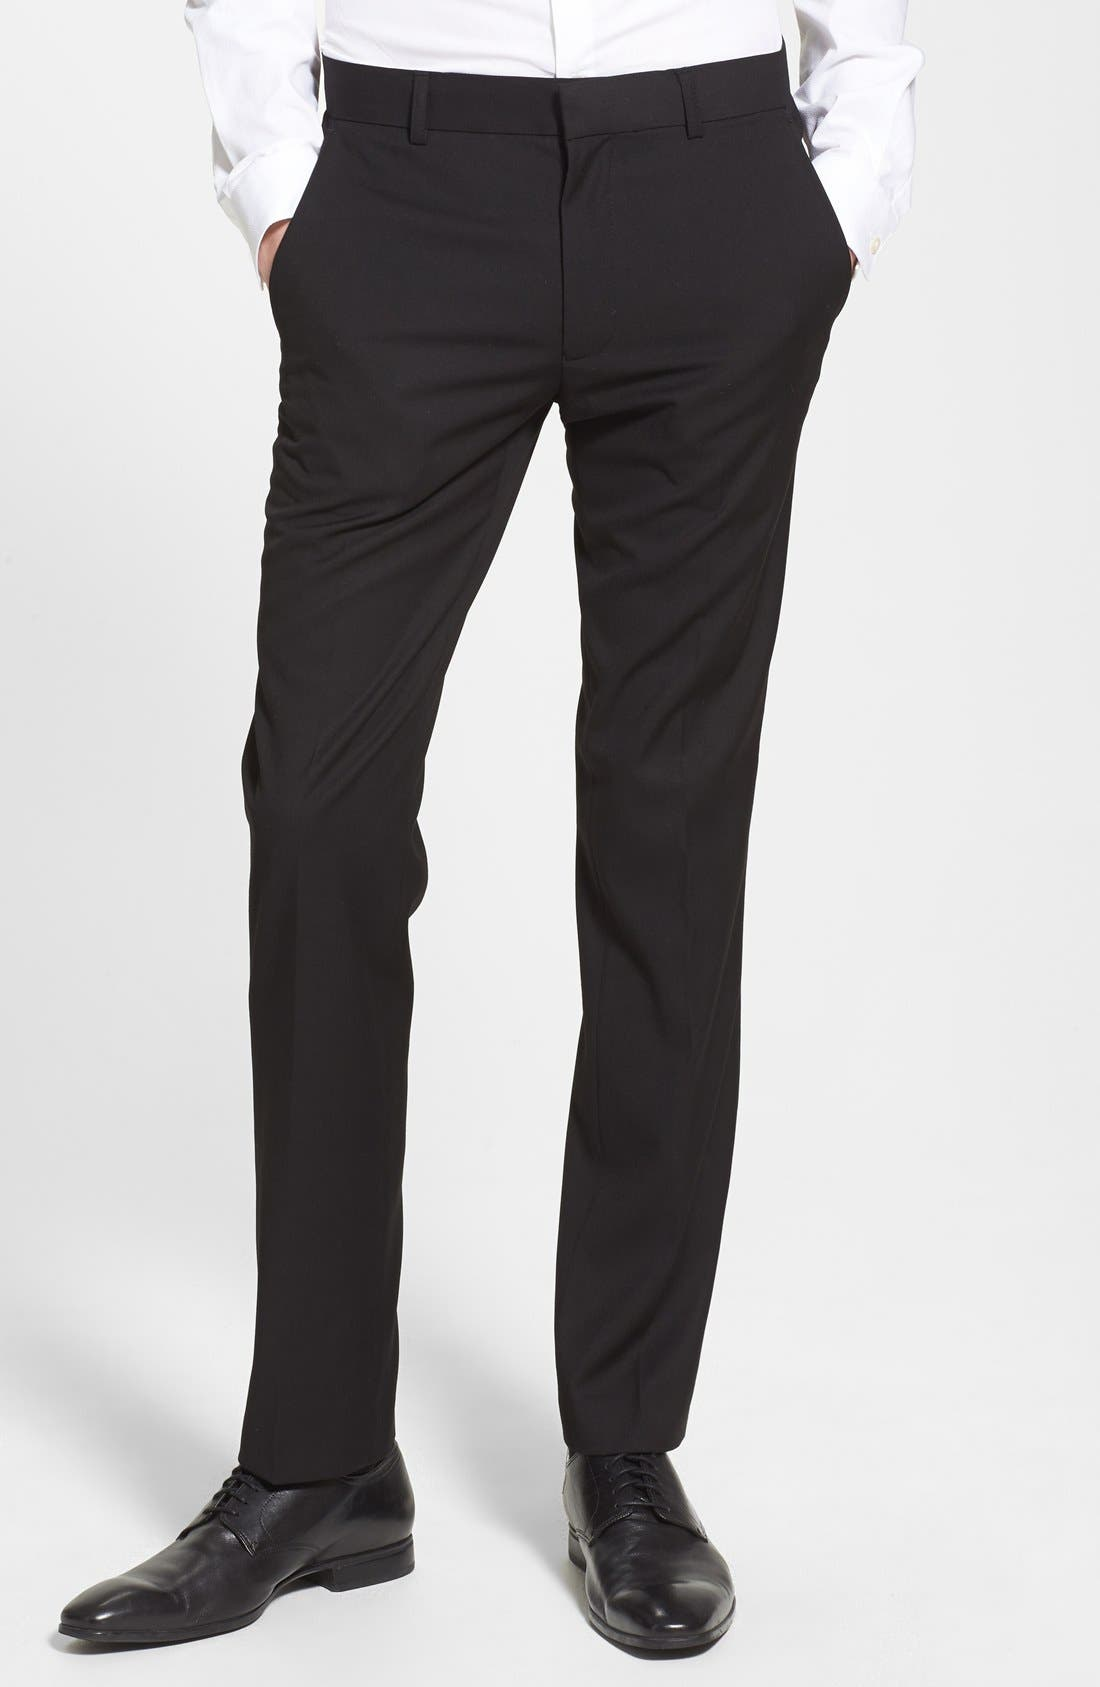 Black Textured Skinny Fit Flat Front Trousers,                         Main,                         color, 001